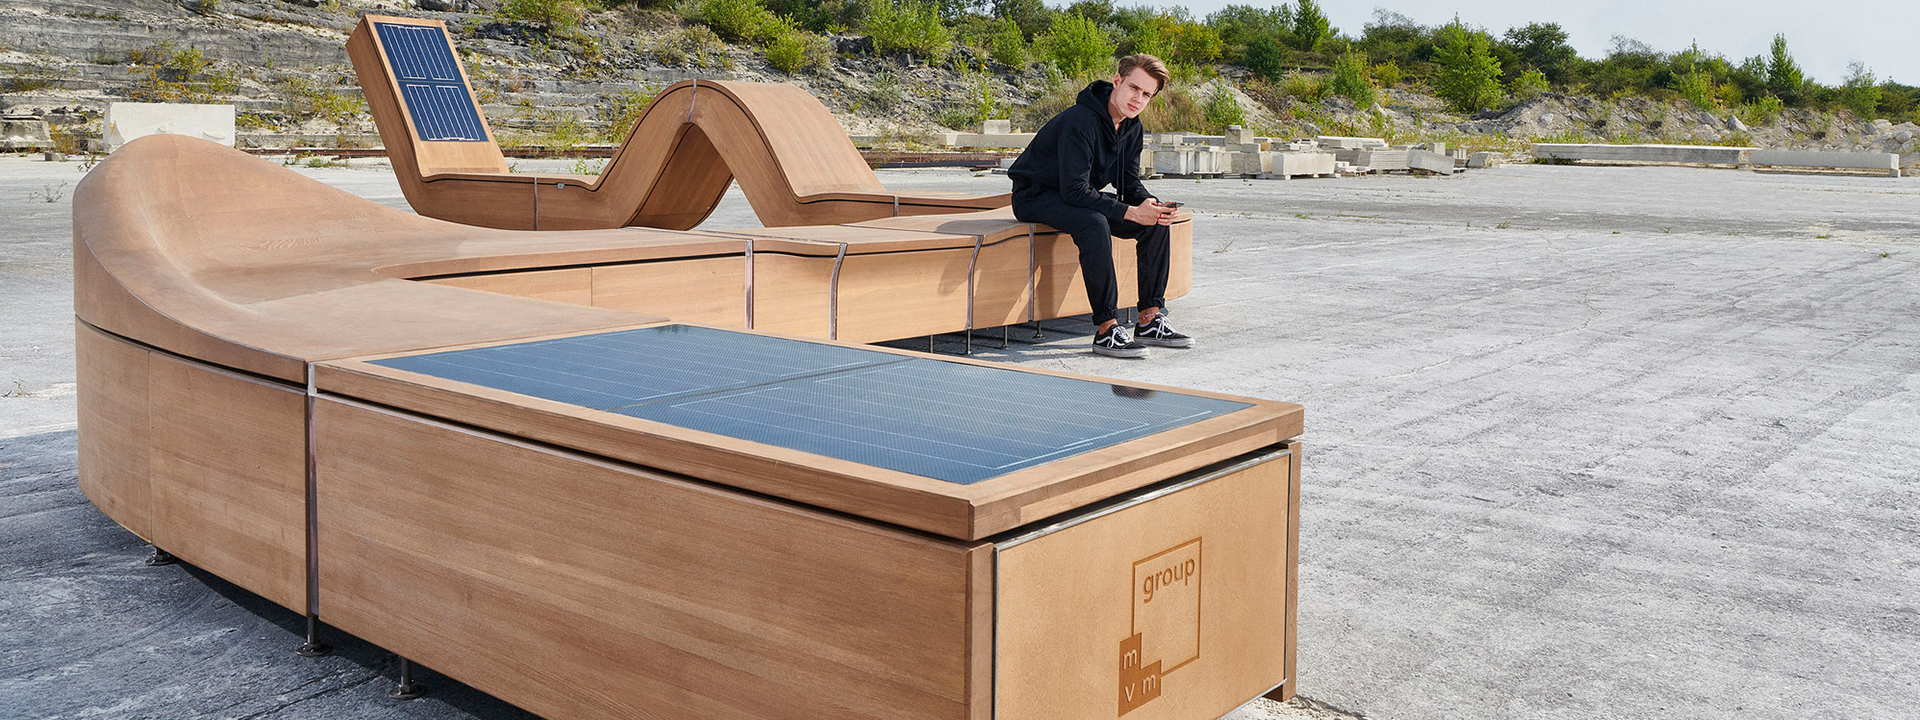 Intelligent Street furniture design that is adapting to the everchanging urban environment